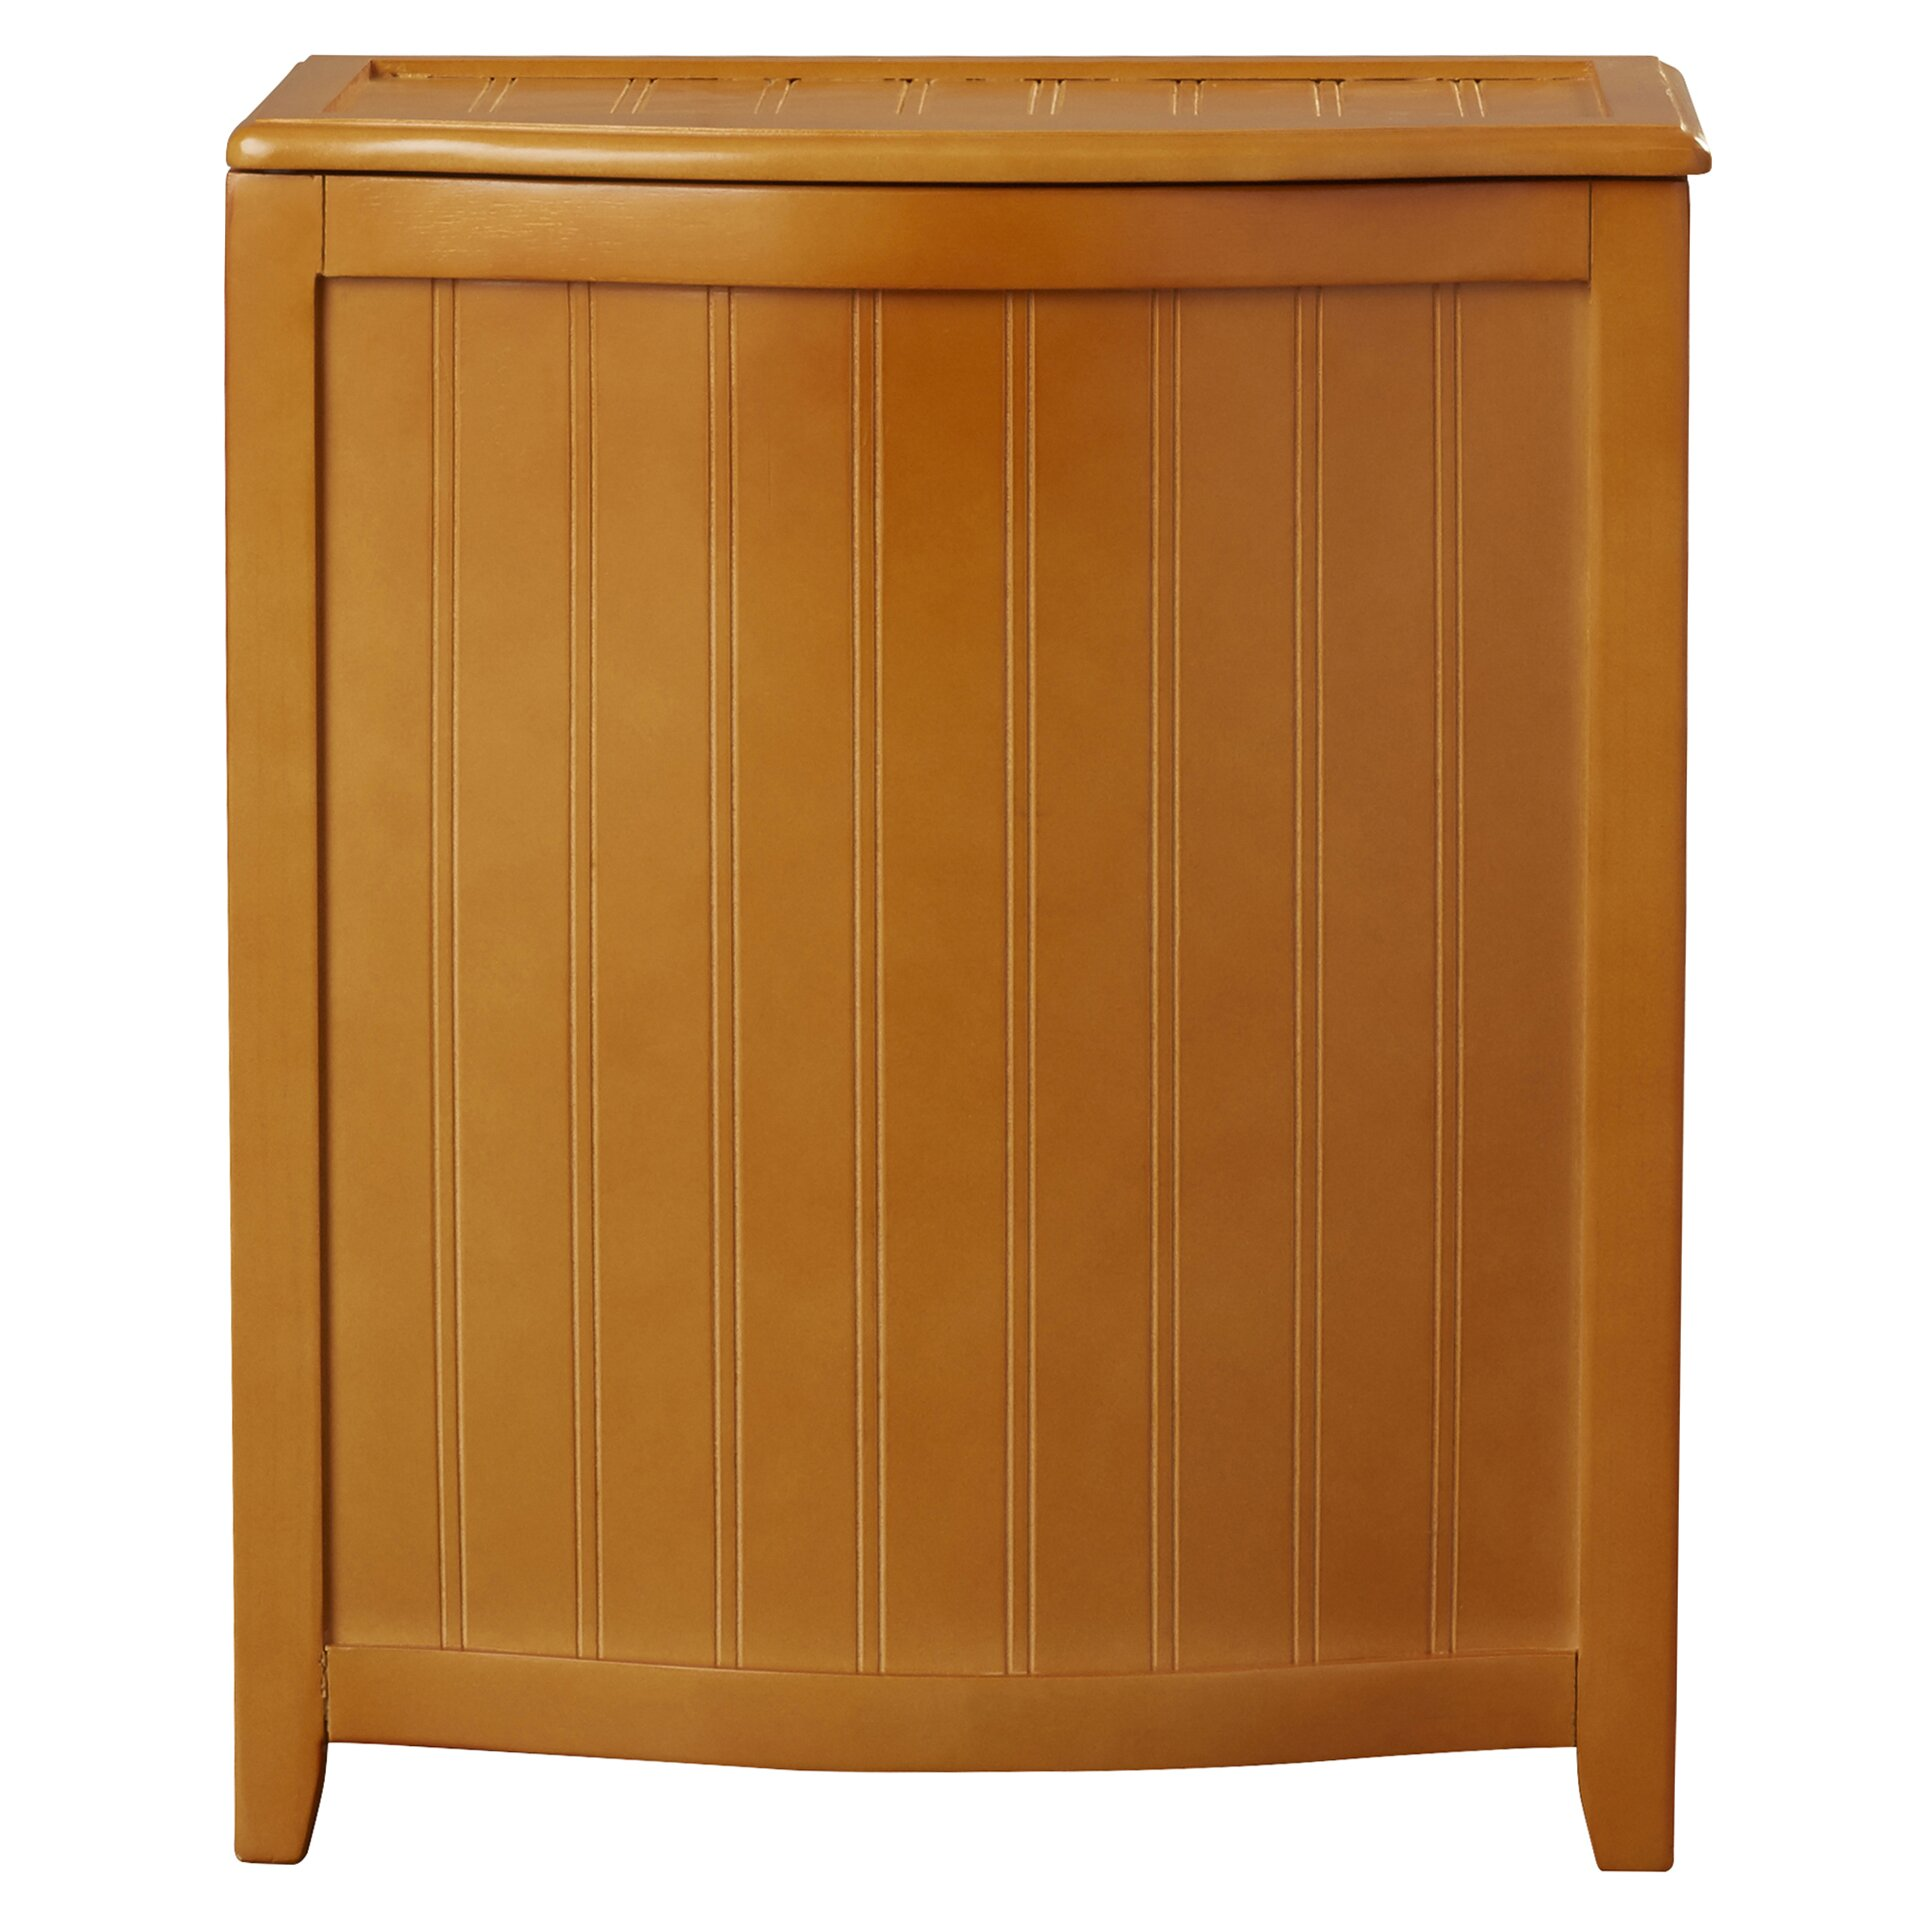 Darby Home Co Flip Lid Wood Cabinet Laundry Hamper